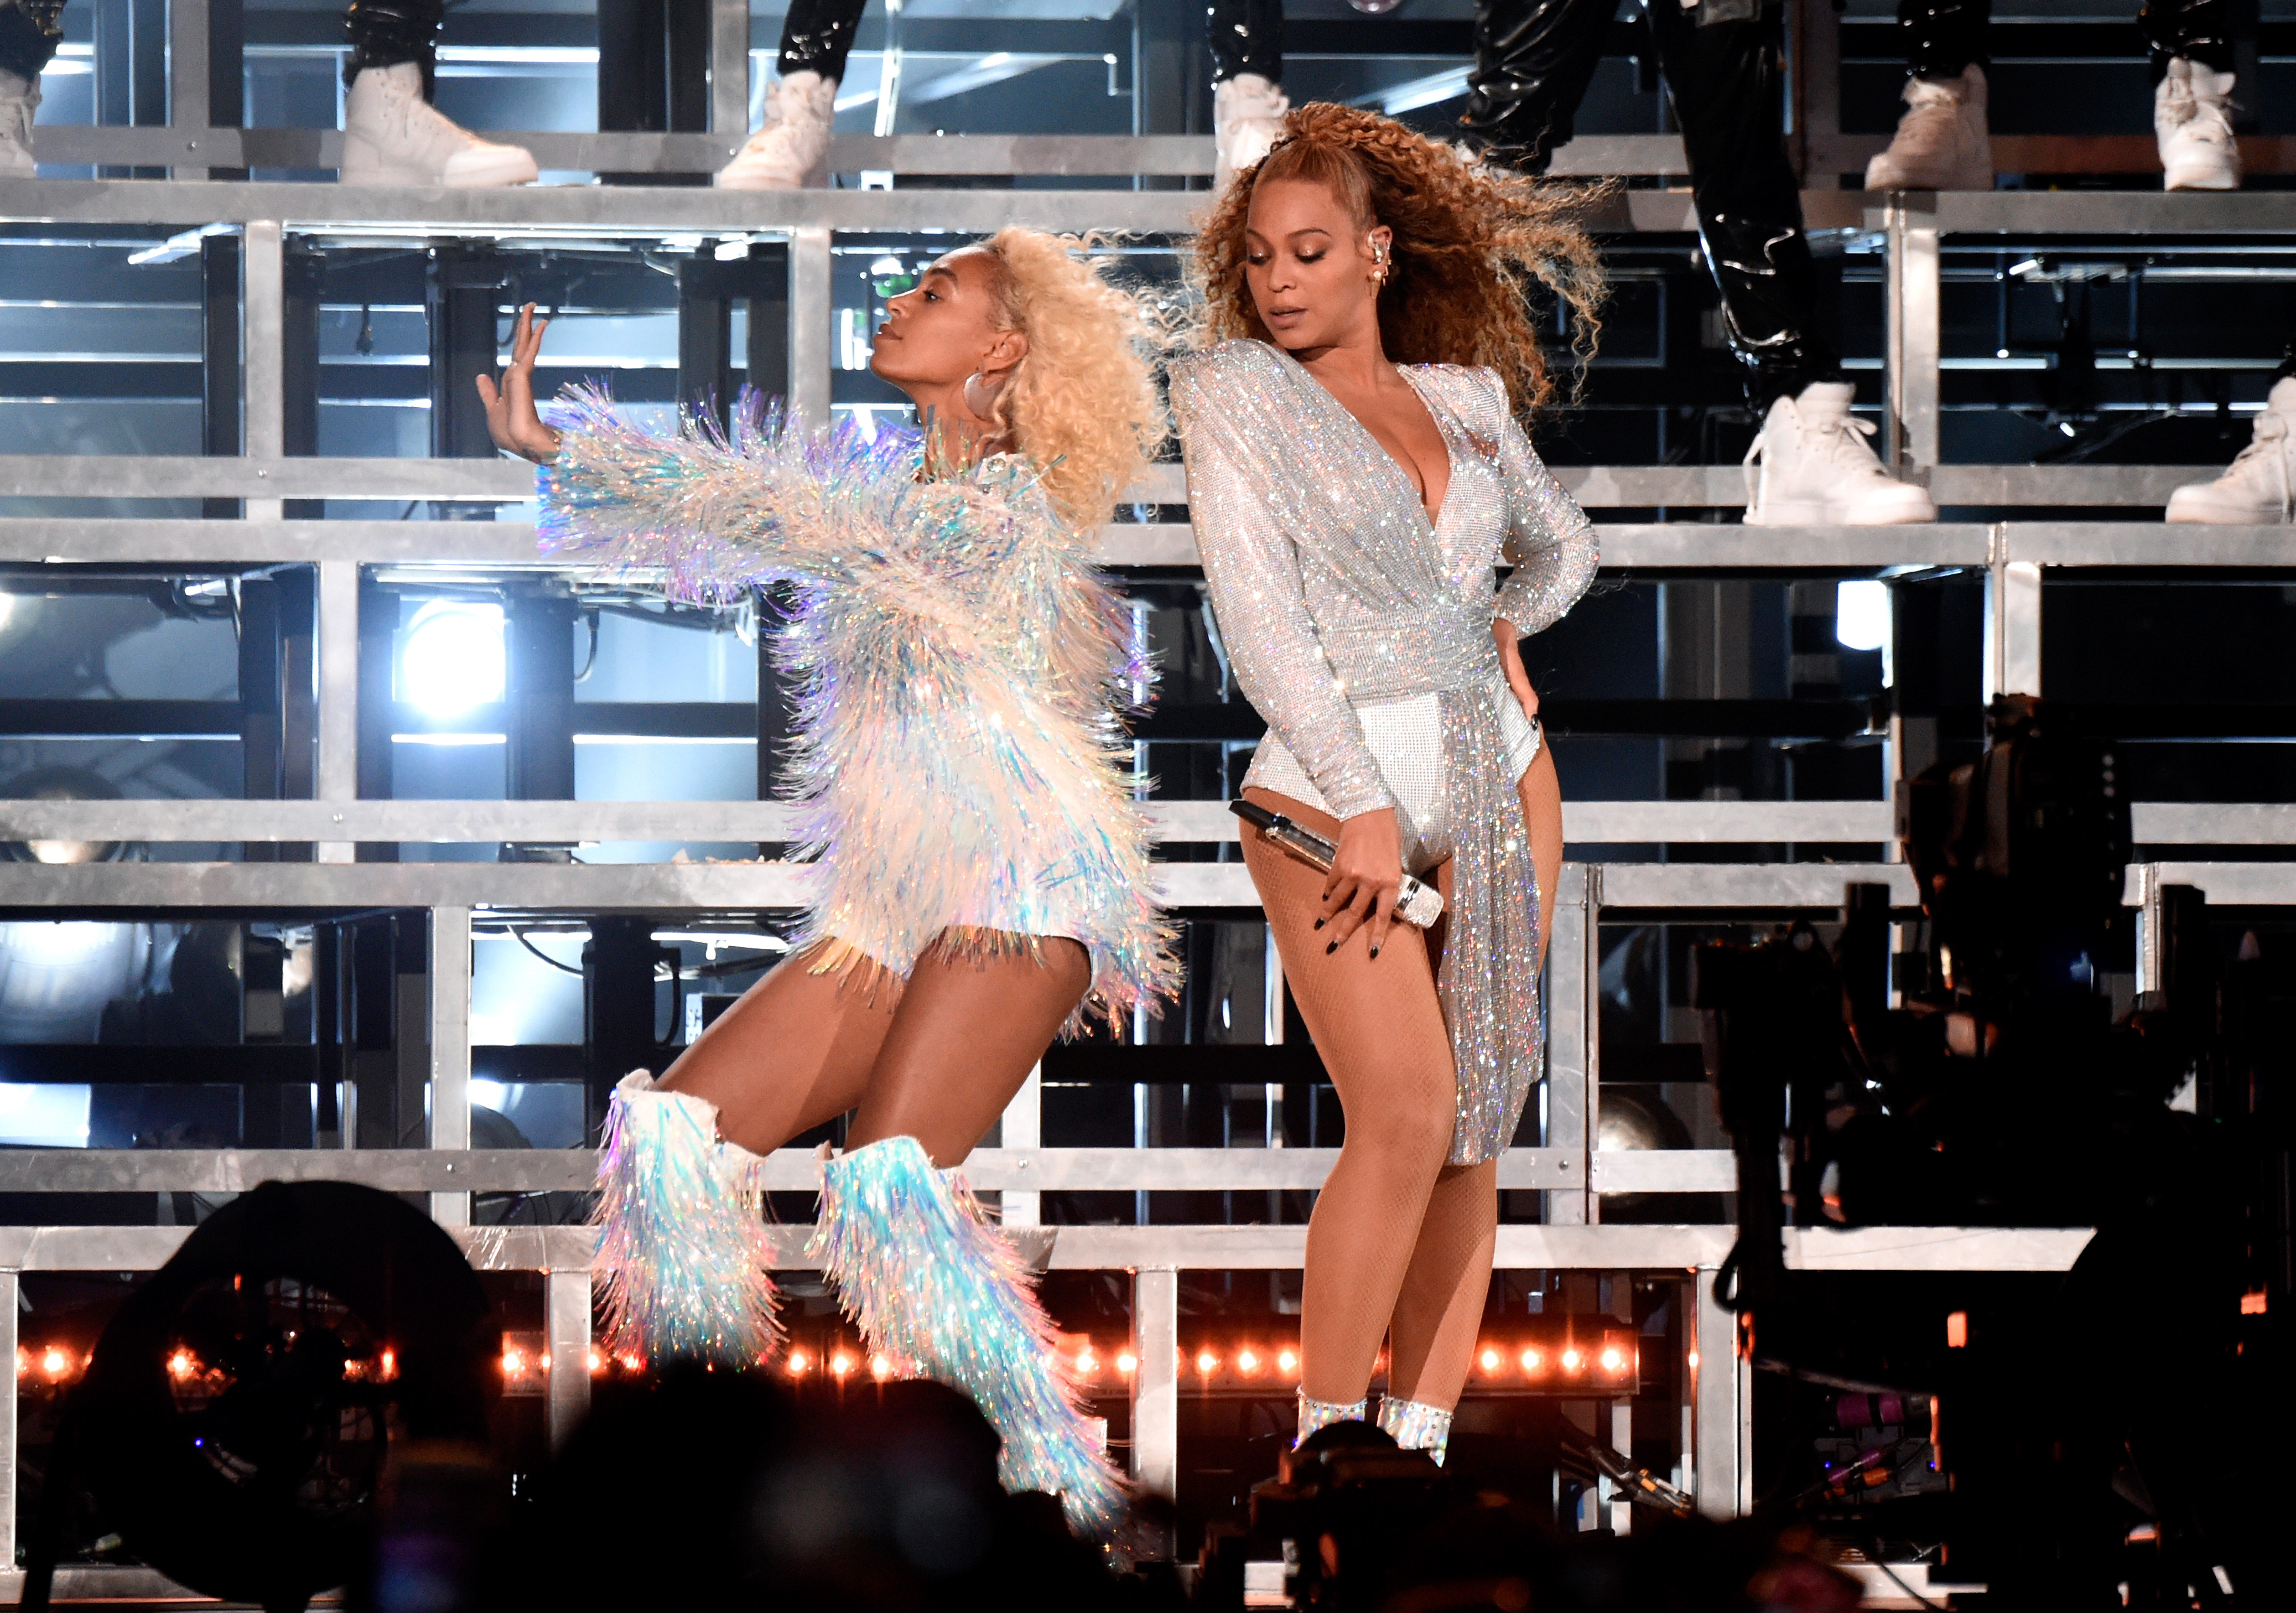 INDIO, CA - APRIL 21:  Solange Knowles (L) and Beyonce Knowles perform onstage during the 2018 Coachella Valley Music And Arts Festival at the Empire Polo Field on April 21, 2018 in Indio, California.  (Photo by Kevin Mazur/Getty Images for Coachella)